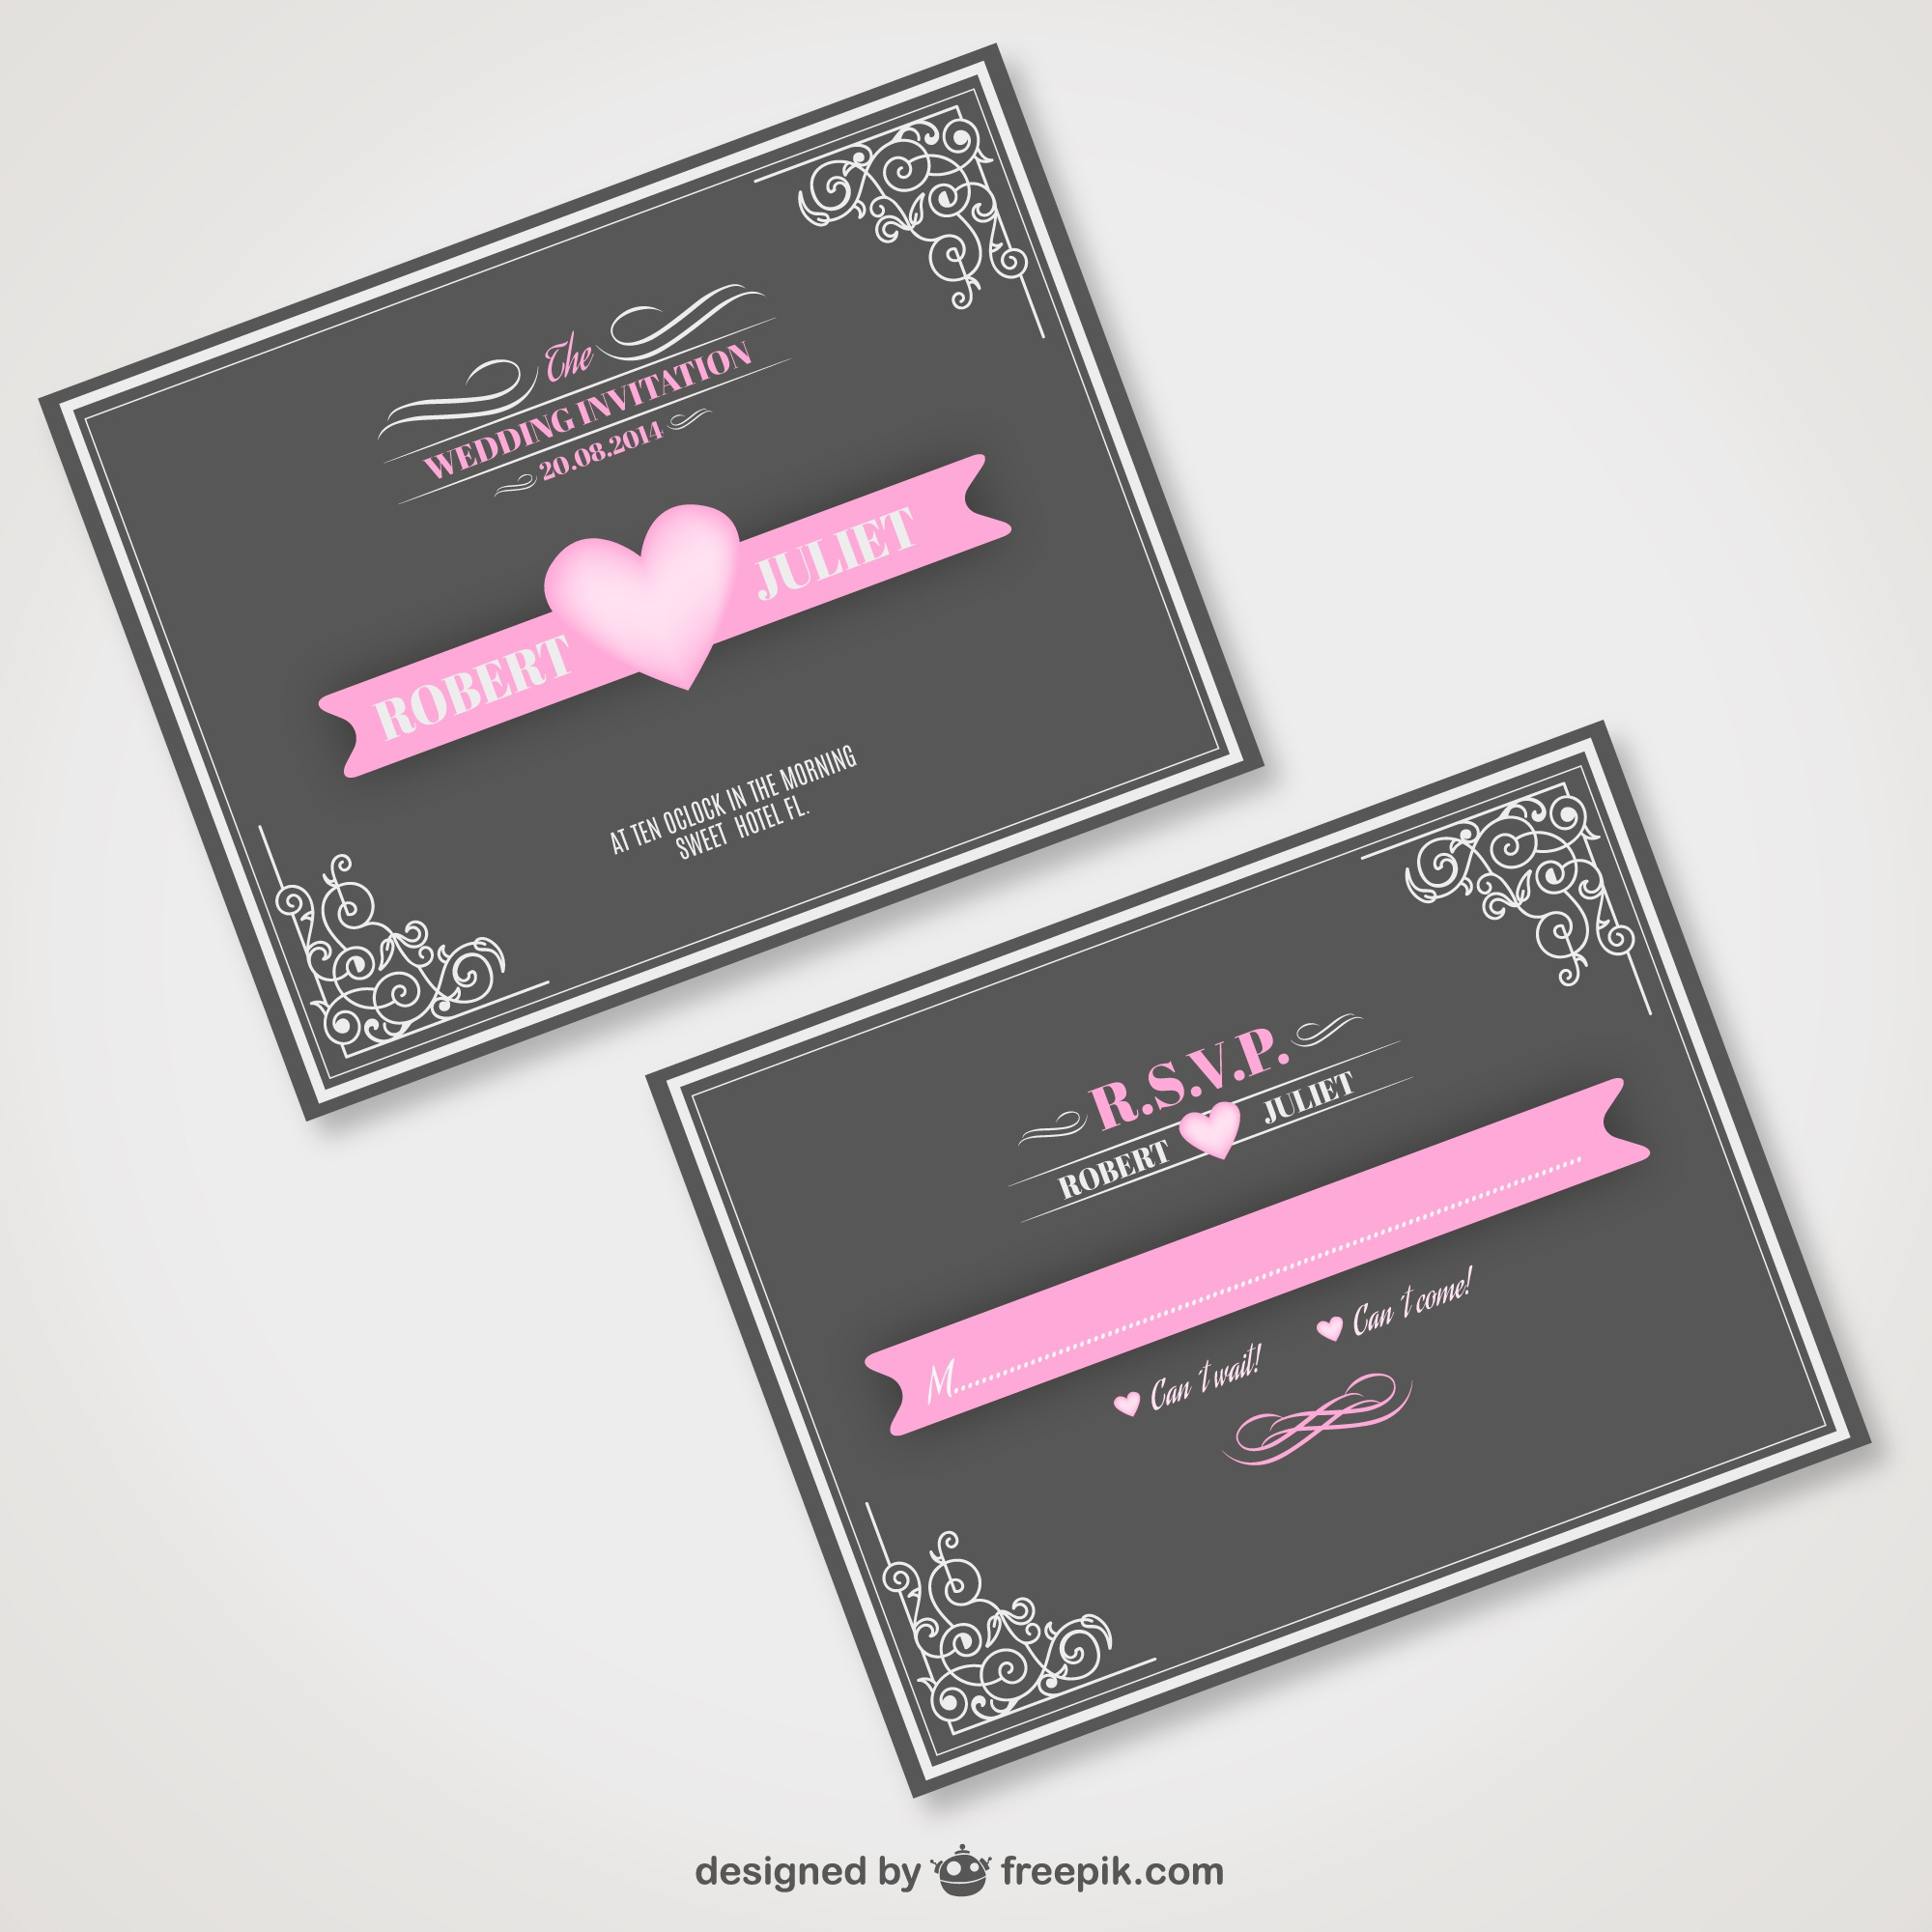 Vintage wedding invitation free for download